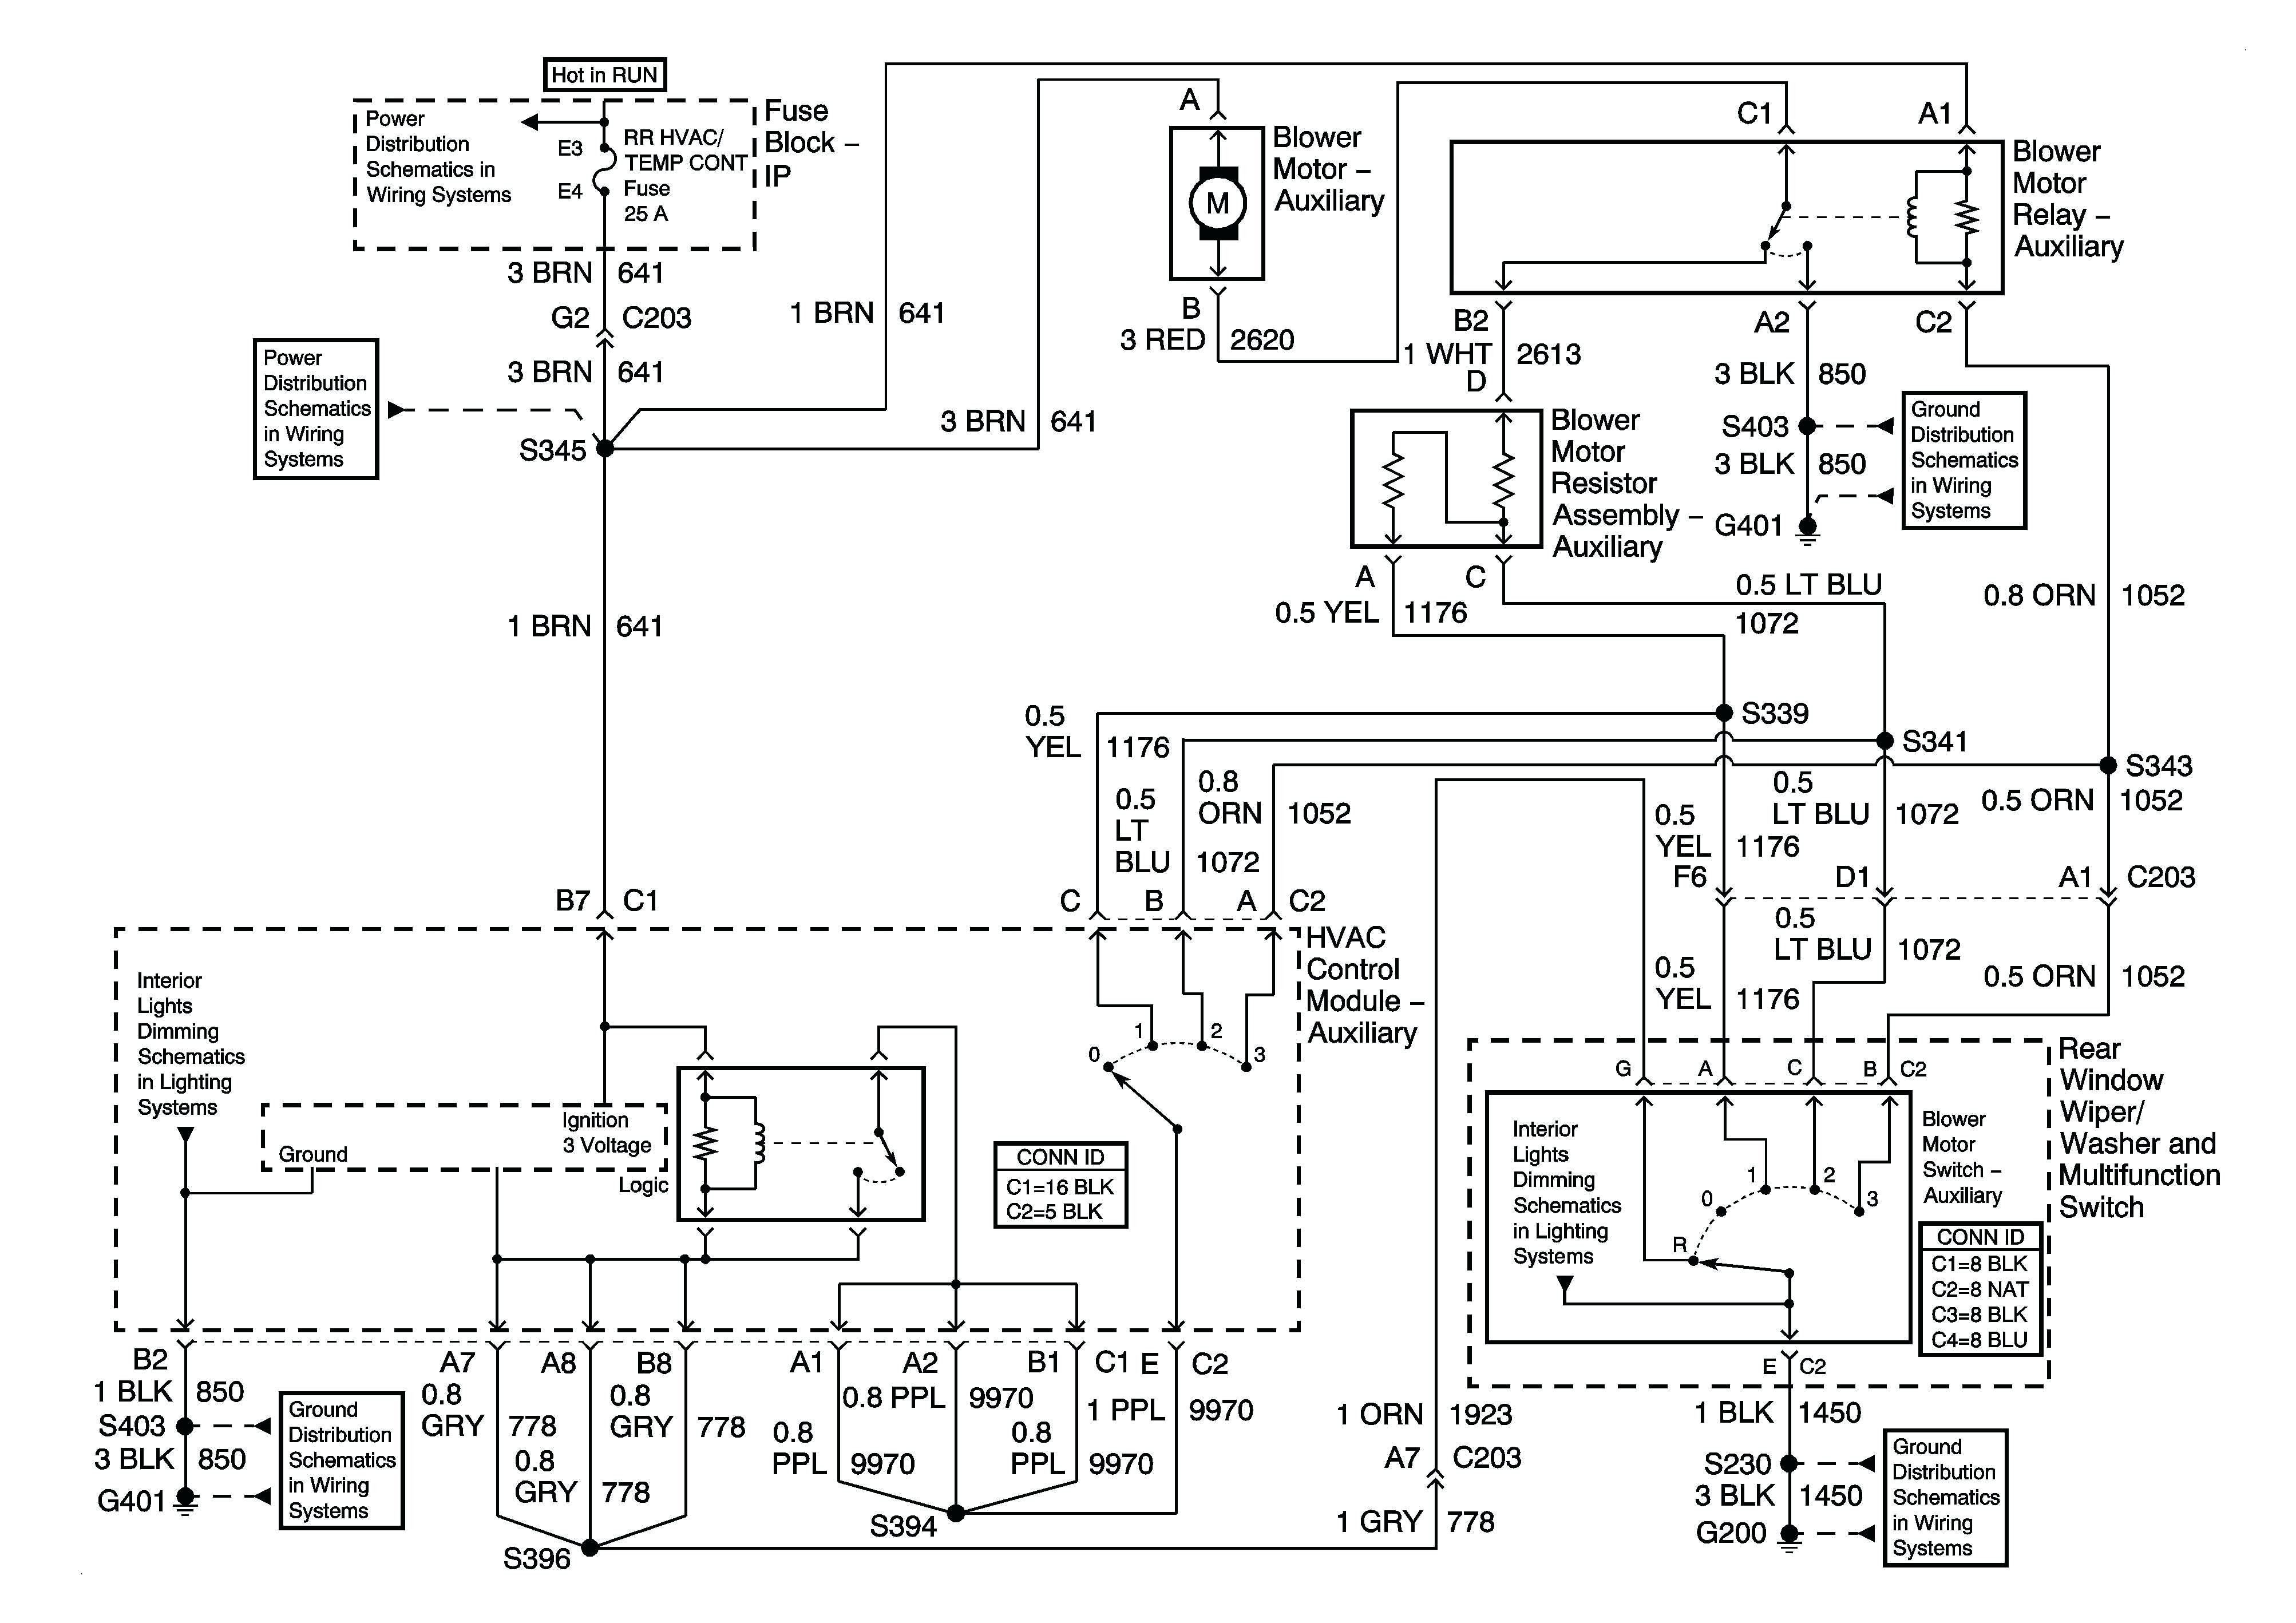 Unique House Electrical Wiring Diagram South Africa Diagram Diagramsample Diagramtemplate Wiringdiagra Electrical Wiring Diagram Diagram Electrical Diagram